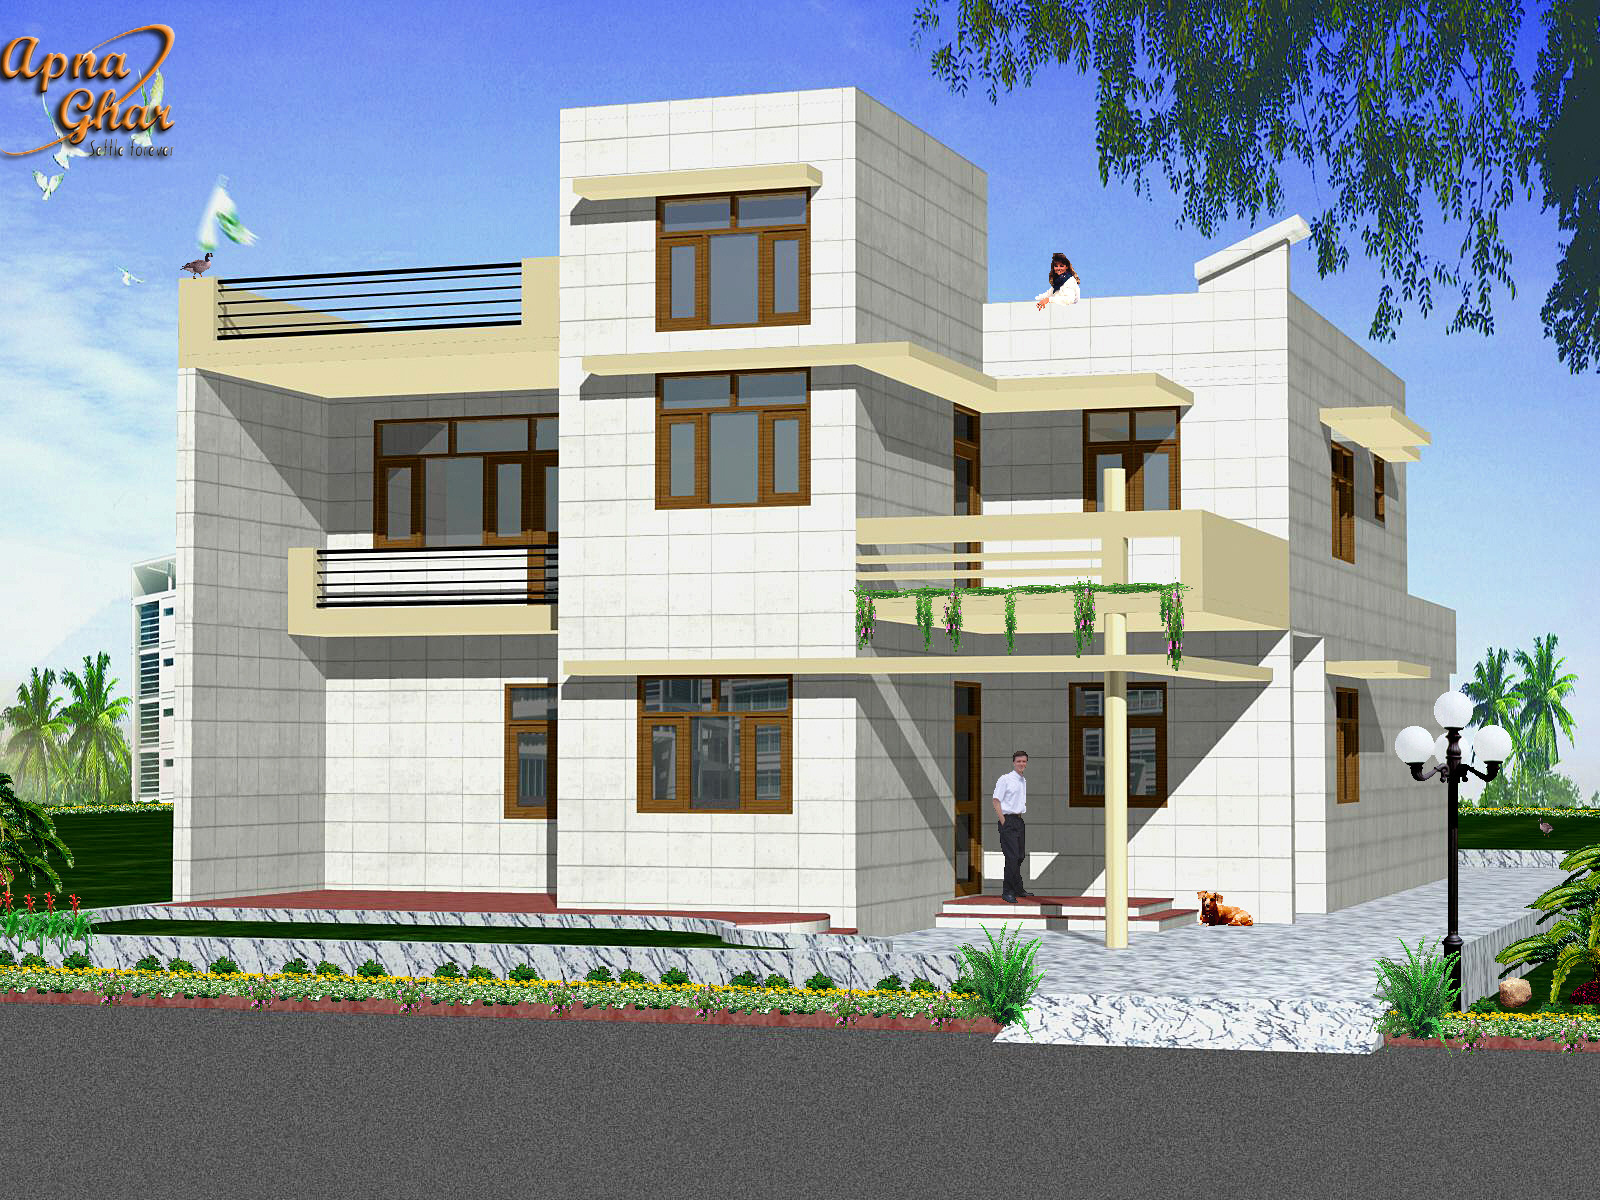 Desg190Floor262 house construction plan in india house plan,How To Plan House Construction In India